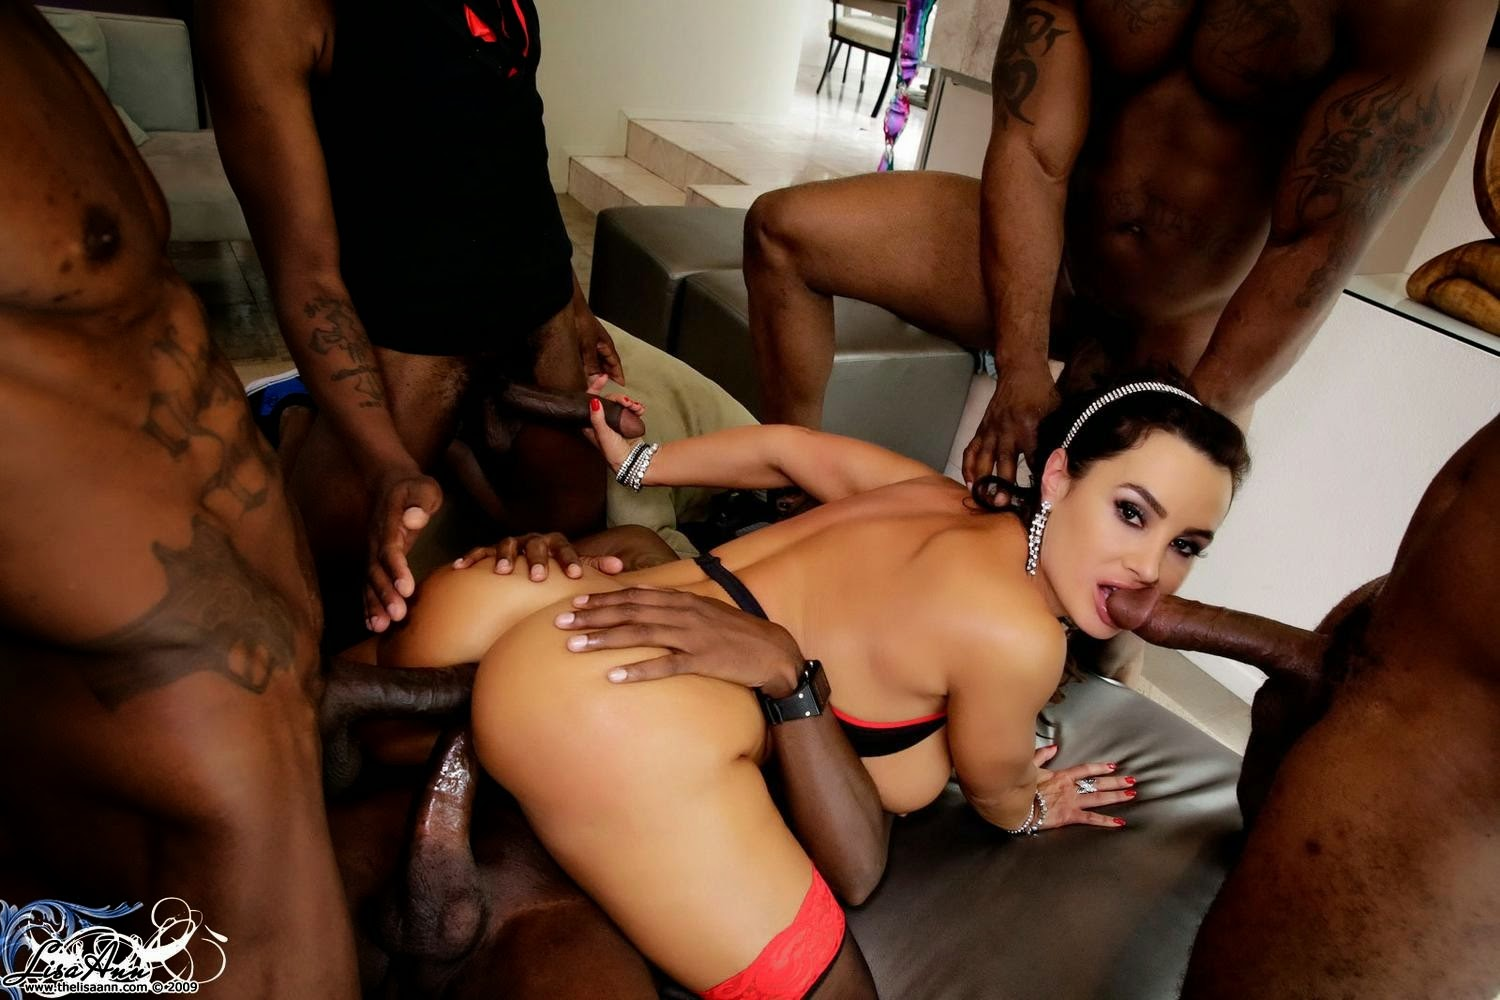 Lisa ann video sexe gratuite